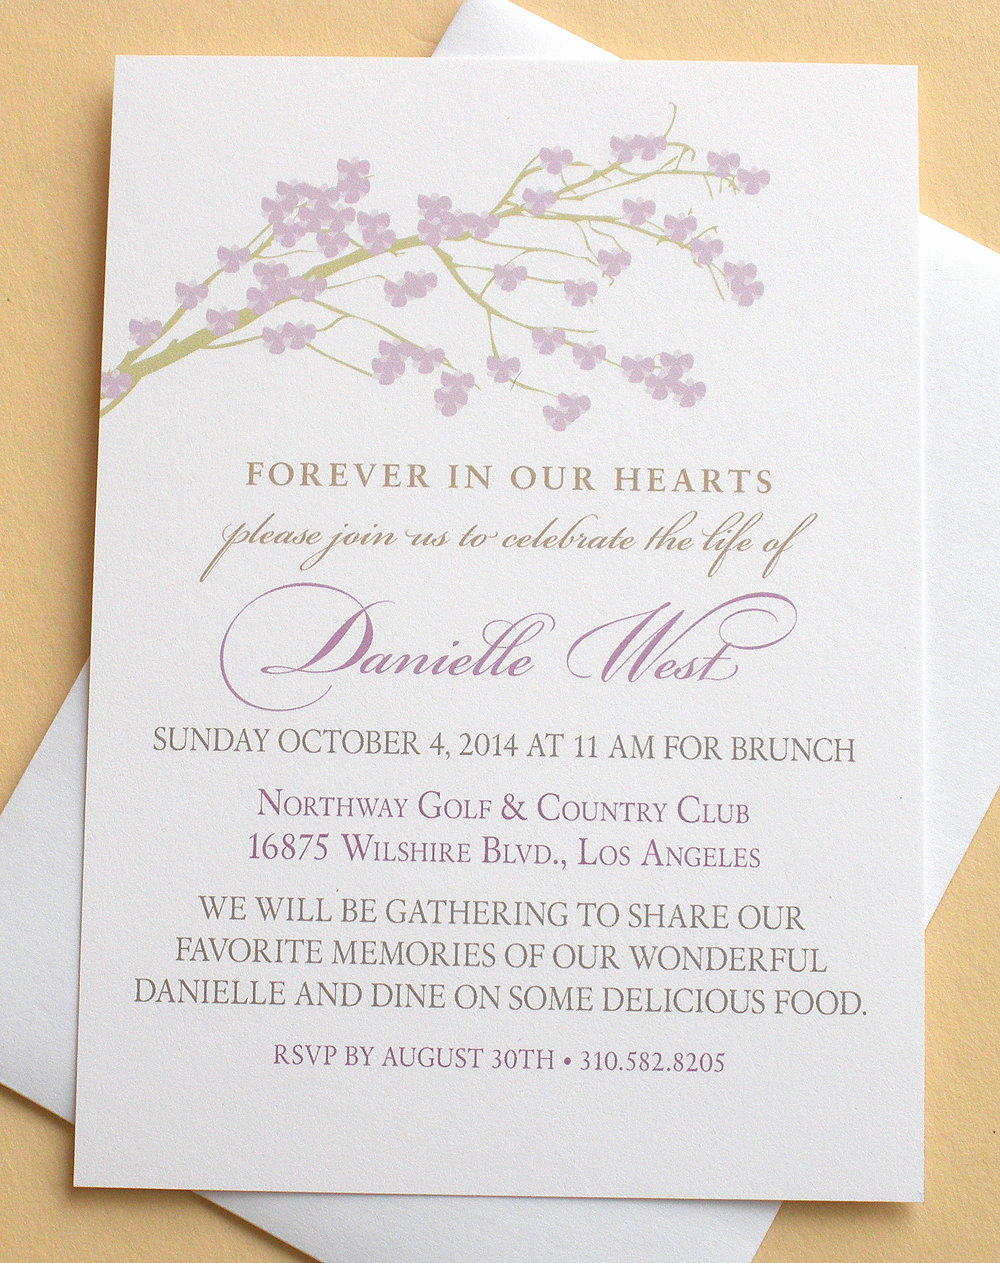 Celebration Of Life Invitation Wording Lovely Celebration Of Life Invitations with A Branch Of by